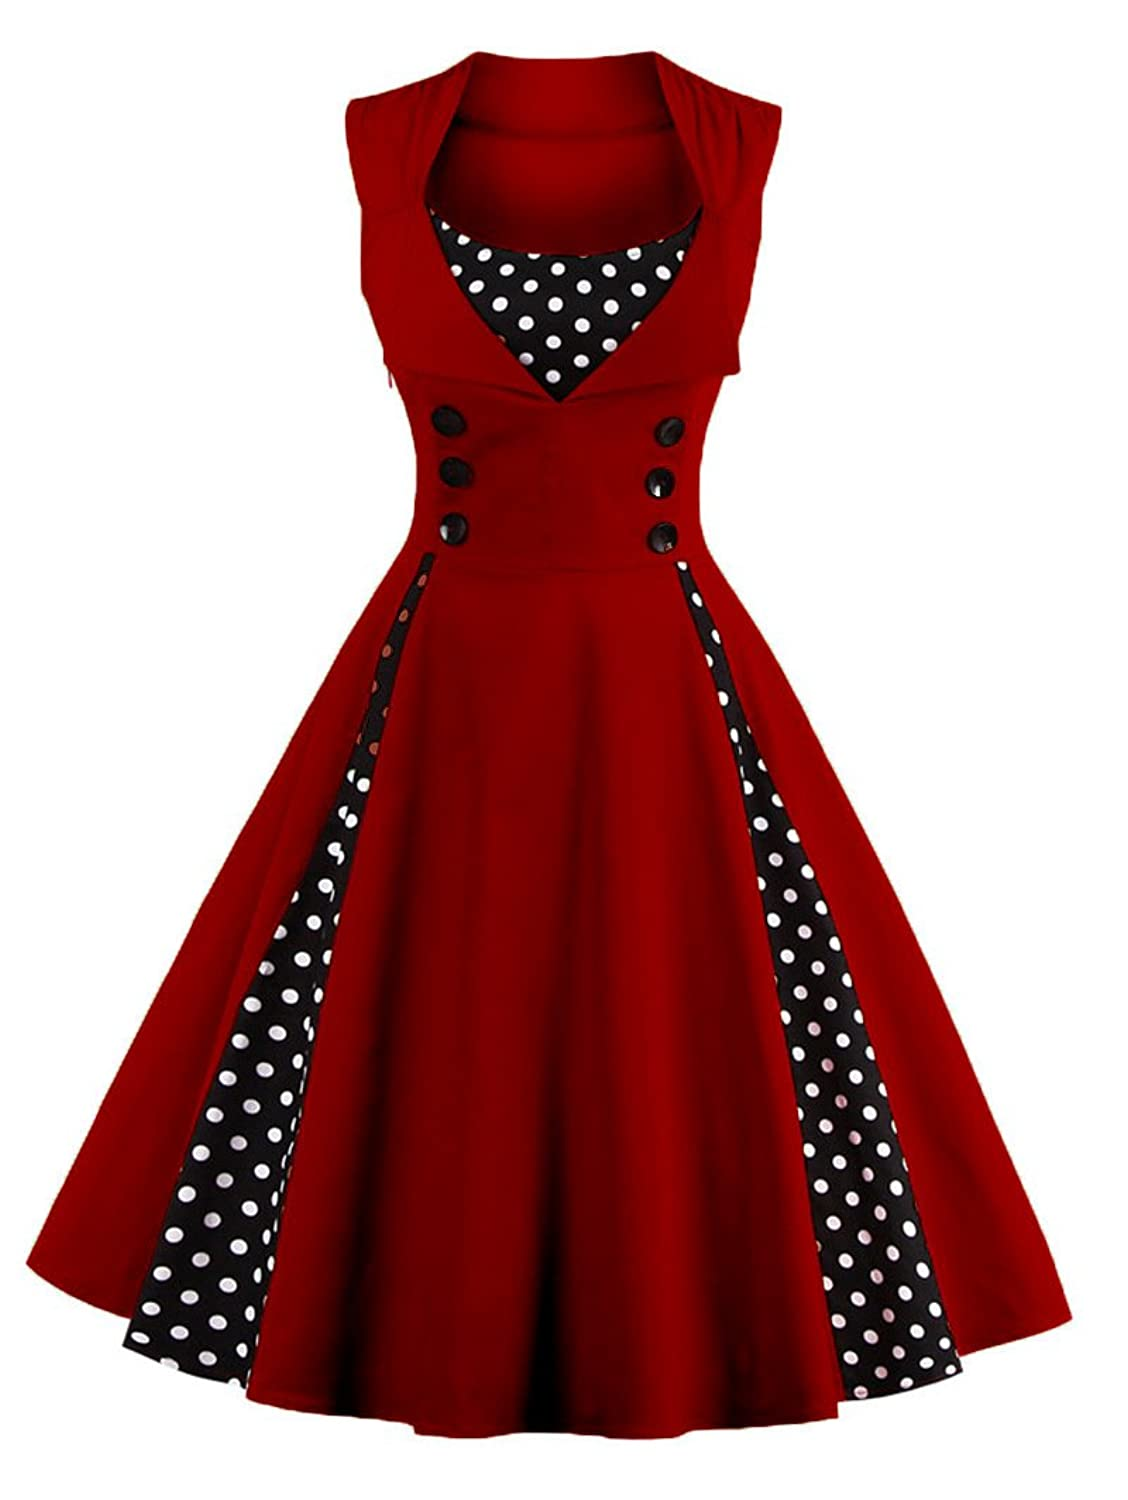 1950s Costumes- Poodle Skirts, Grease, Monroe, Pin Up, I Love Lucy LUNAJANY Womens Rockabilly Vintage Polka Dot Pin up Swing Cocktail Party Dress $24.59 AT vintagedancer.com